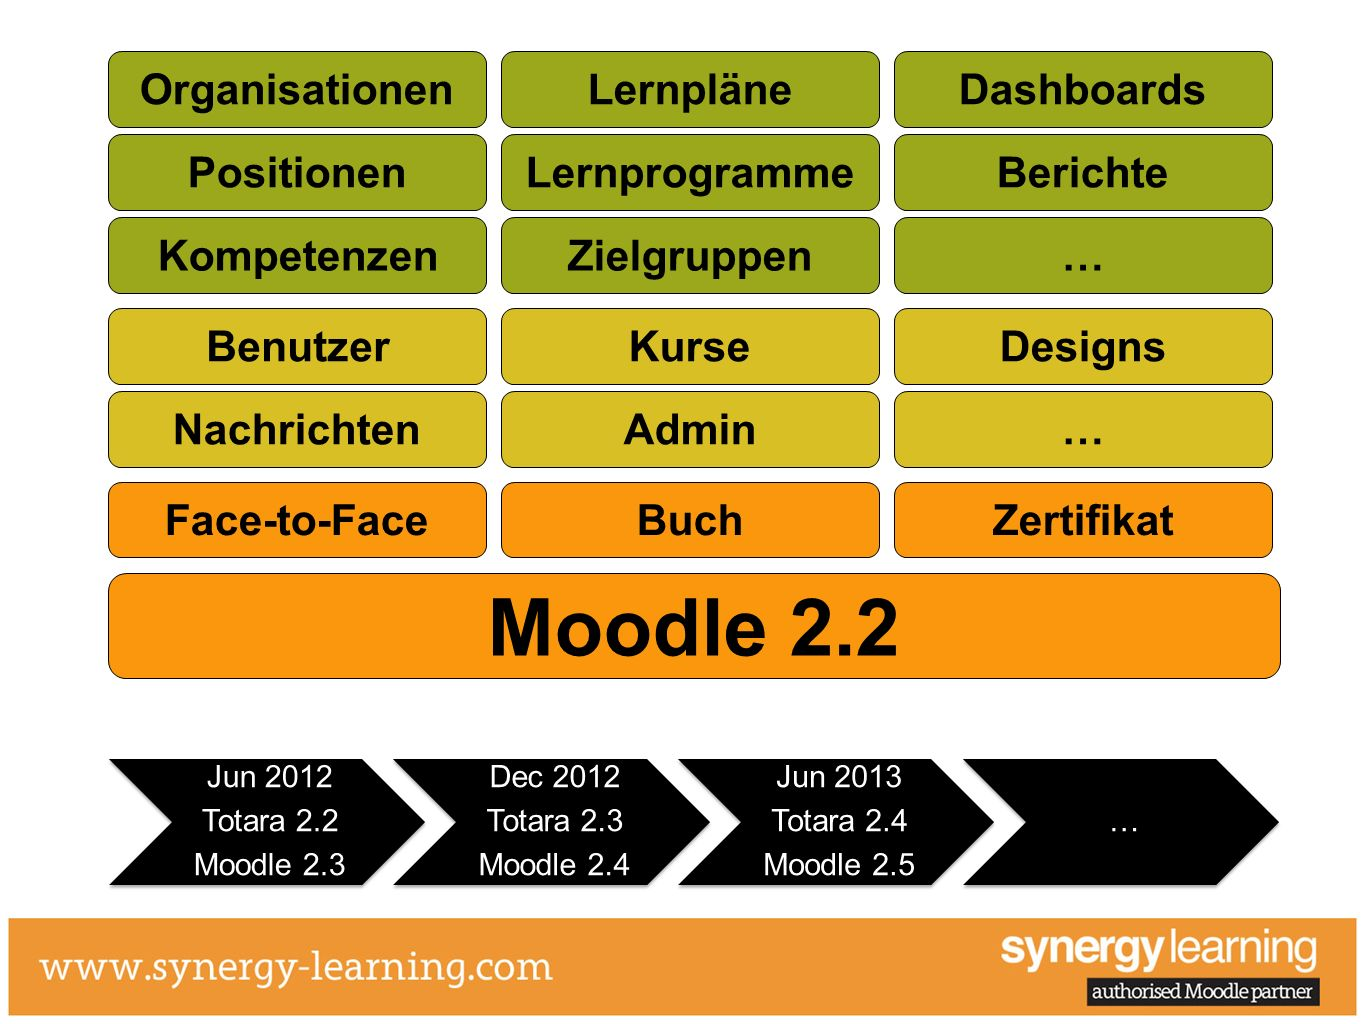 Moodle 2.2 Organisationen Lernpläne Dashboards Positionen